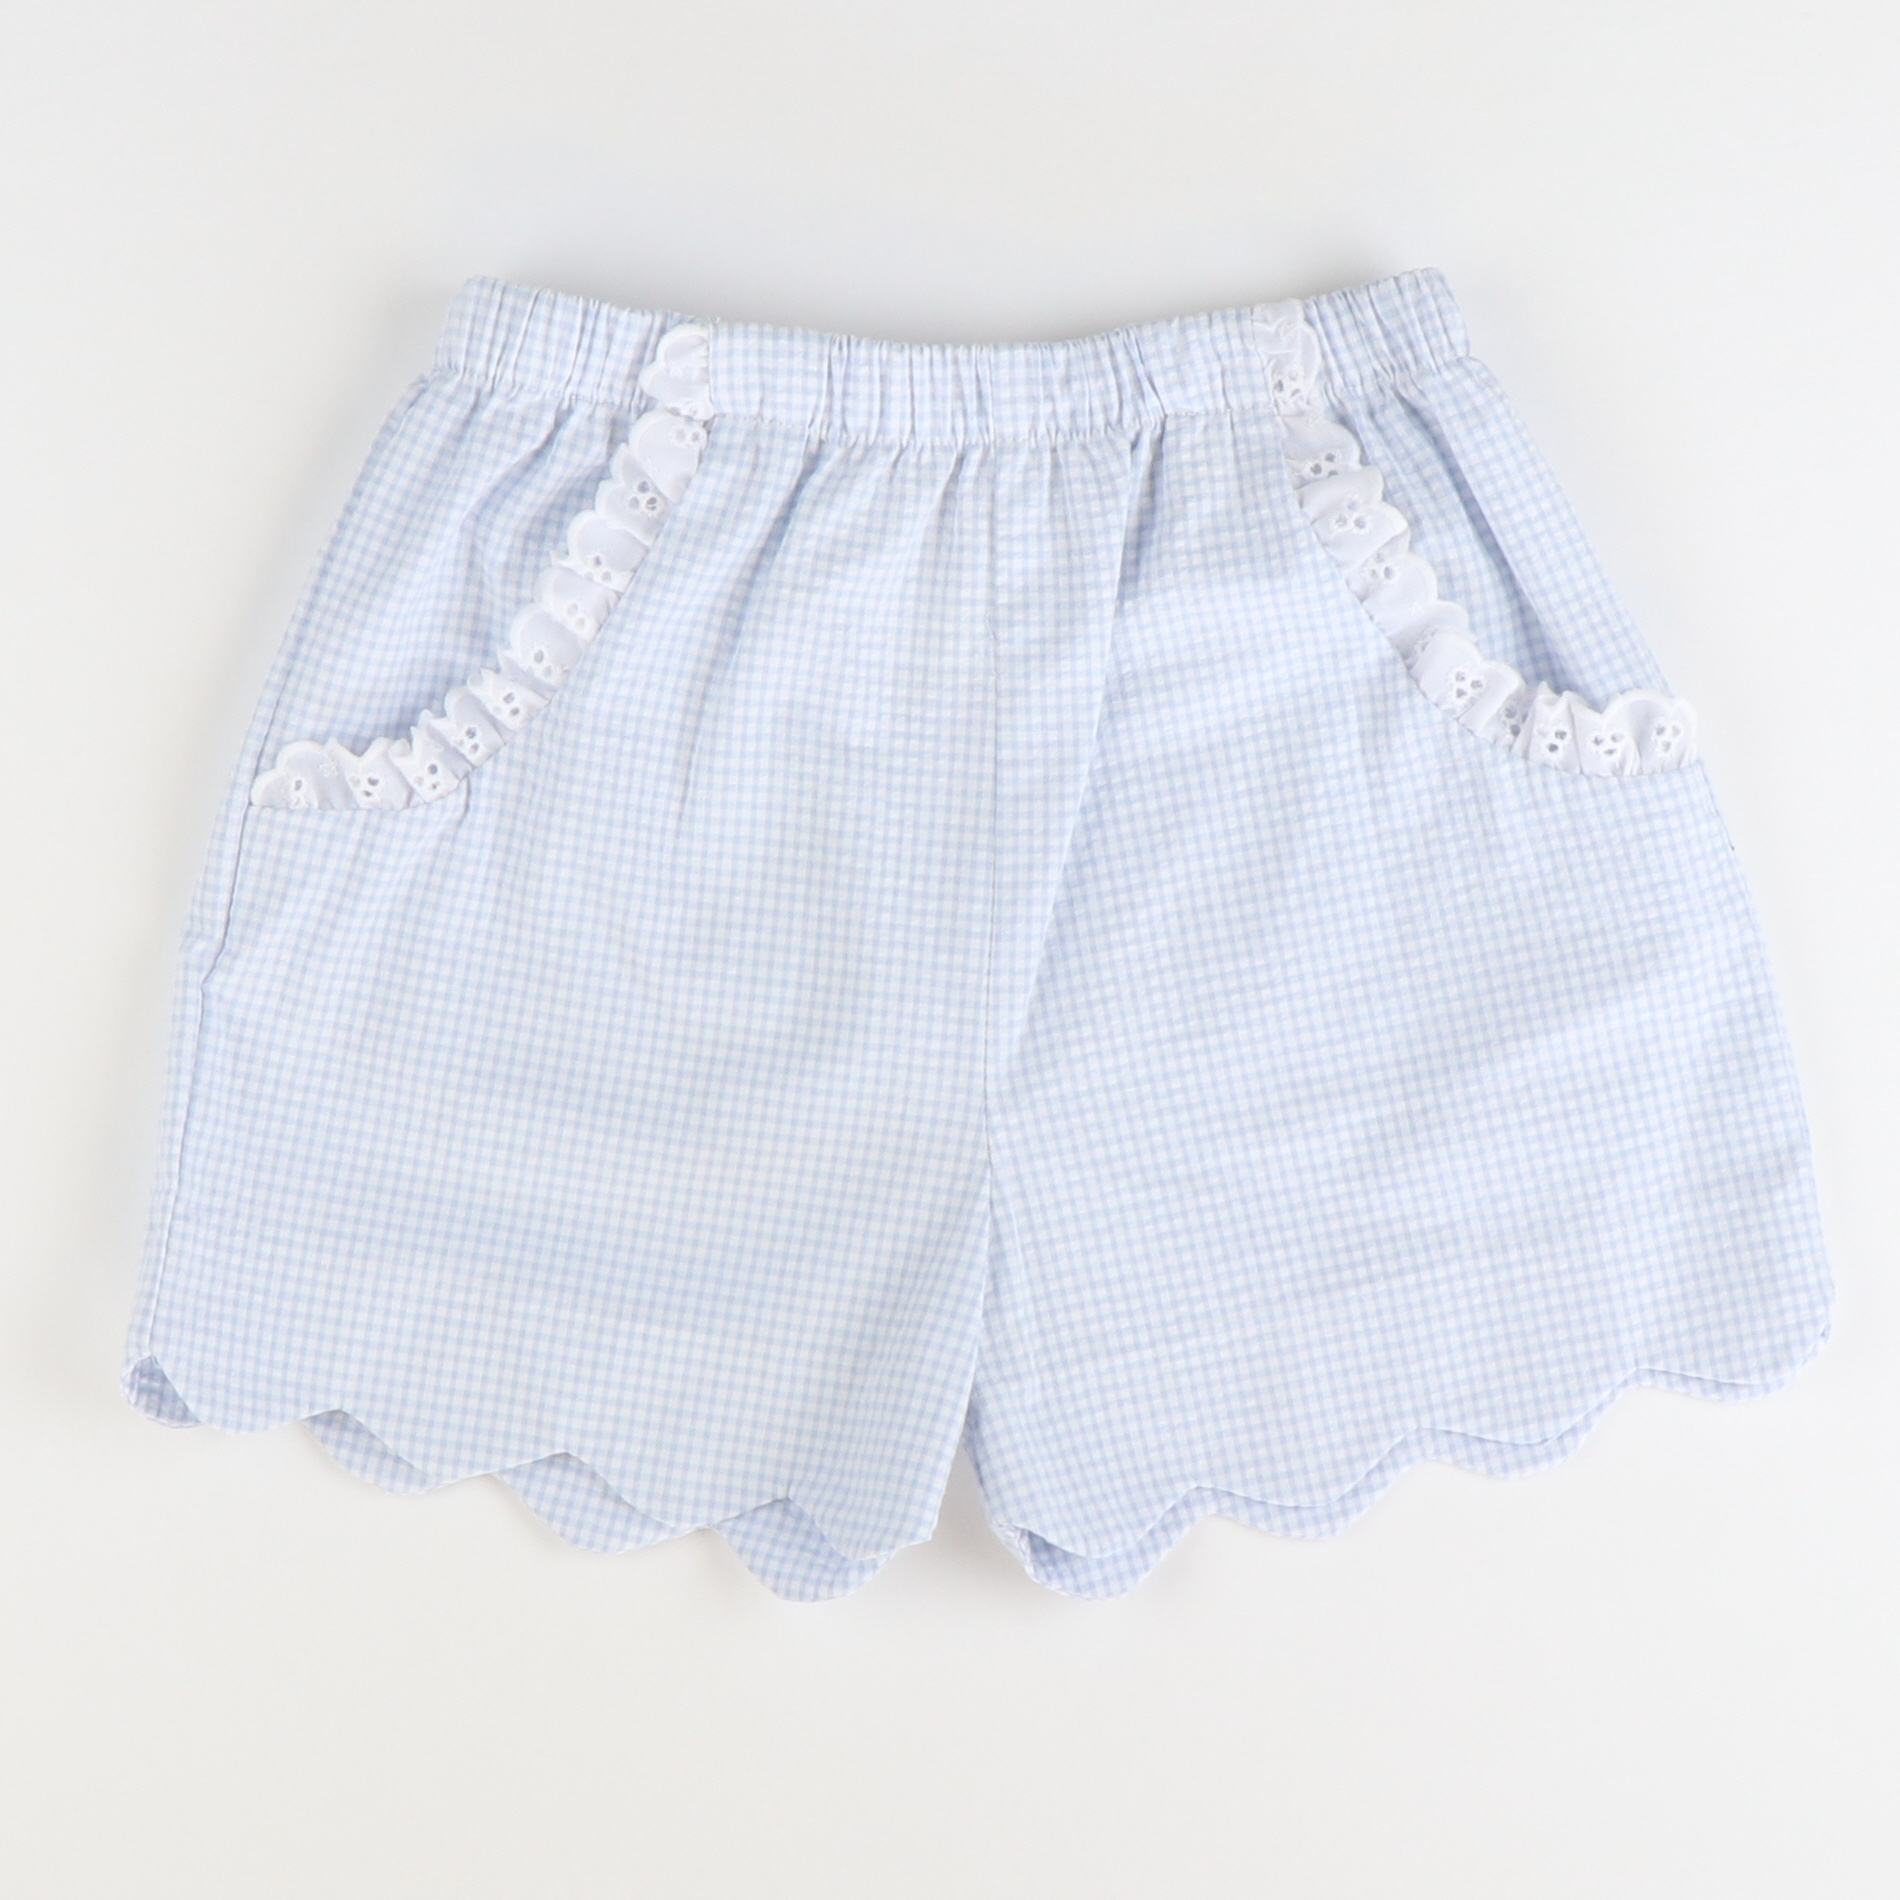 Soda Shop Scalloped Shorts - Cloud Mini Check Seersucker